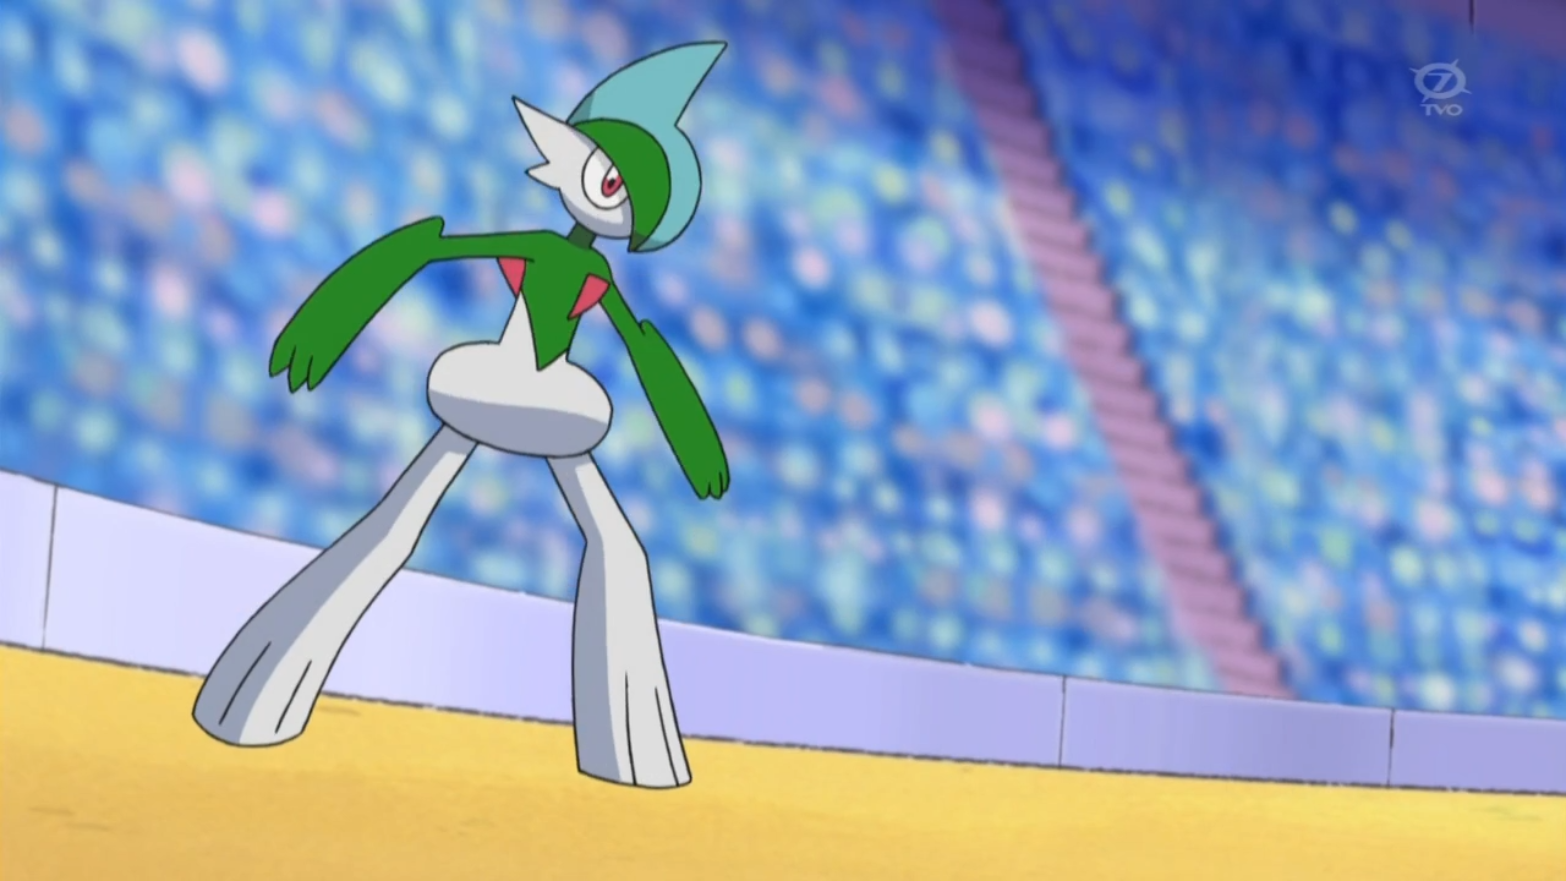 Zoey's Gallade | Pokémon Wiki | FANDOM powered by Wikia